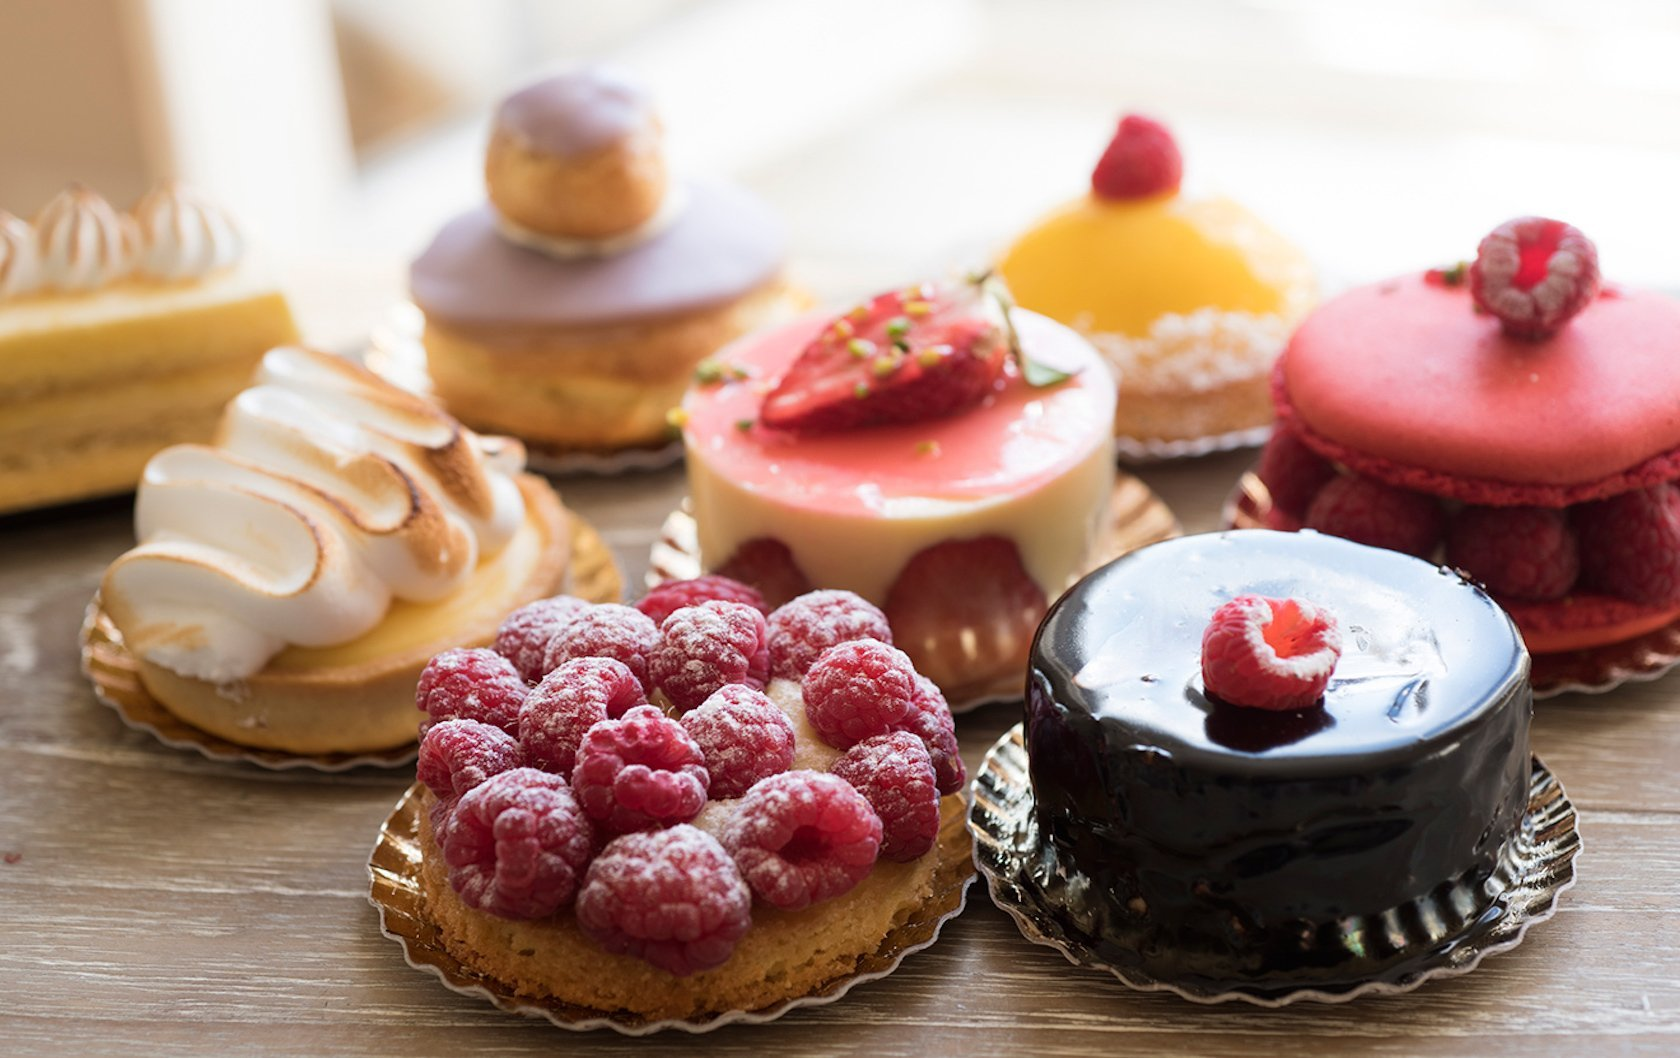 Pastries in Paris: Take a Walk on the Sweet Side in Saint-Germain-des-Prés